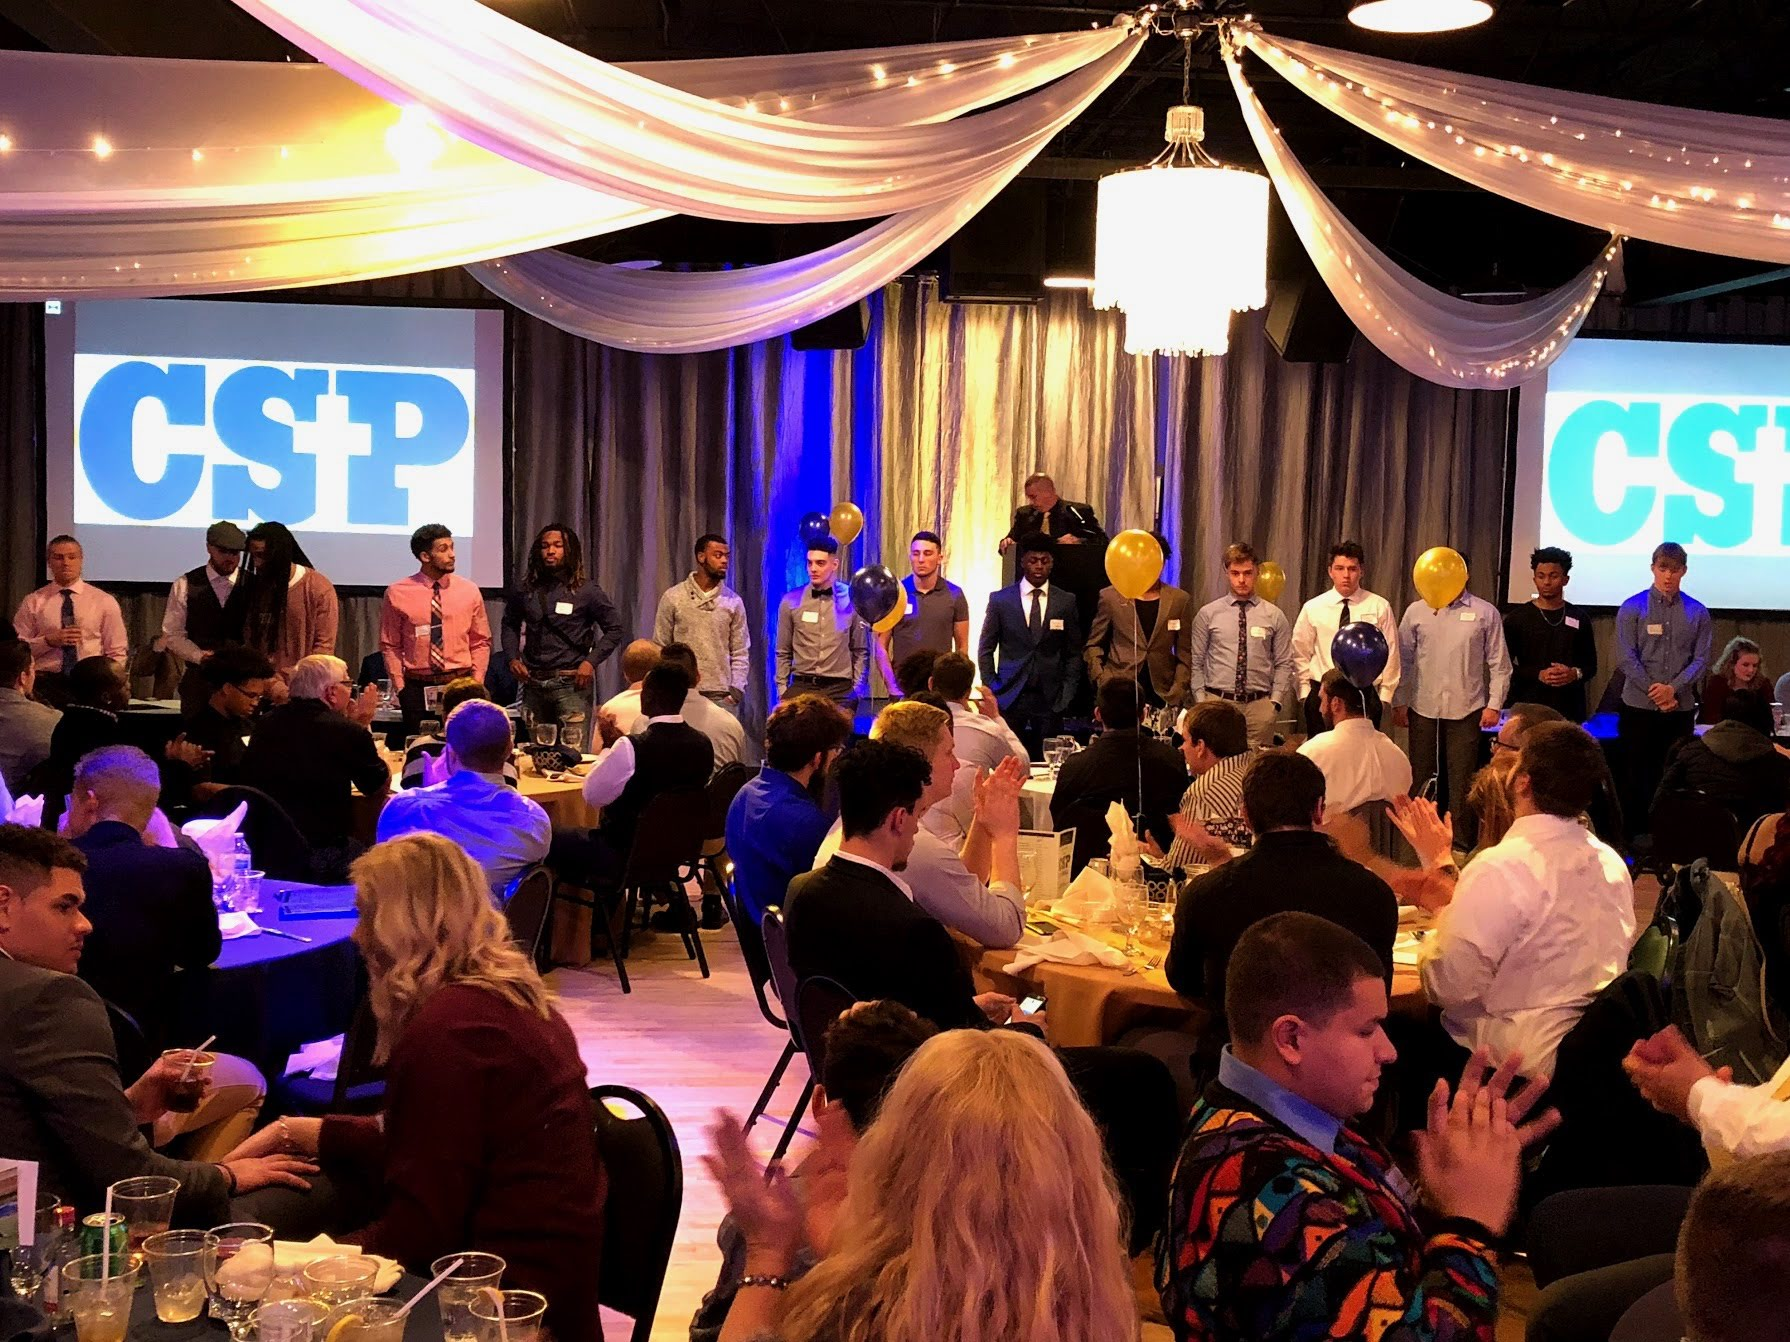 Midpointe Event Center Majestic Hall Banquet Awards Ceremony Concorida College Saint Paul Minnesota.jpg